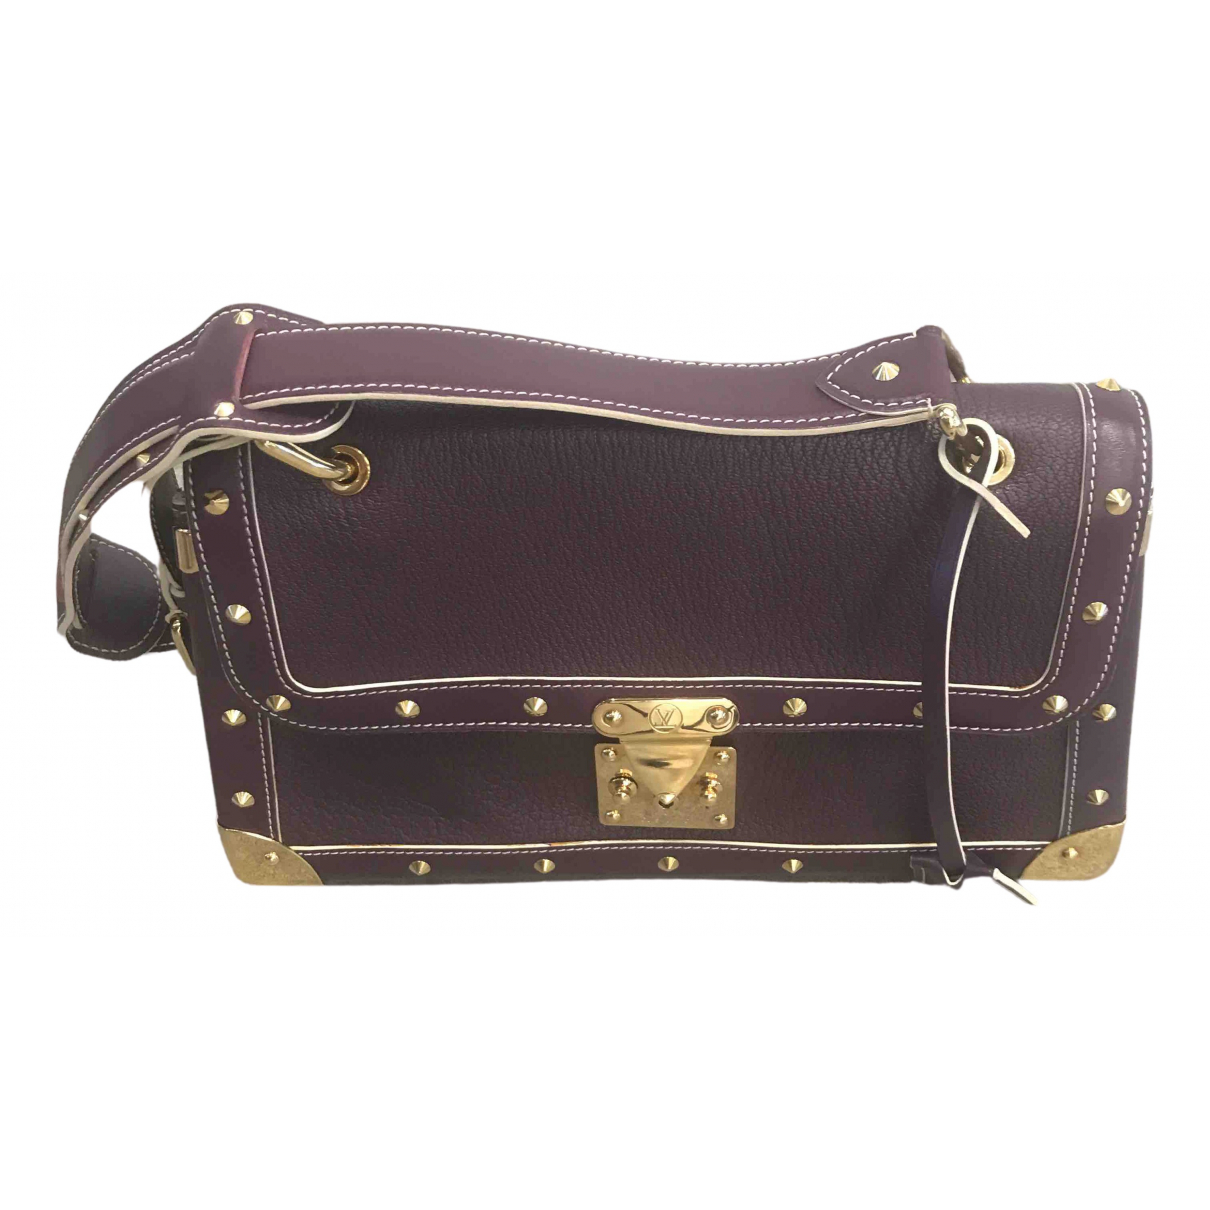 Louis Vuitton Le Talentueux Purple Leather handbag for Women \N